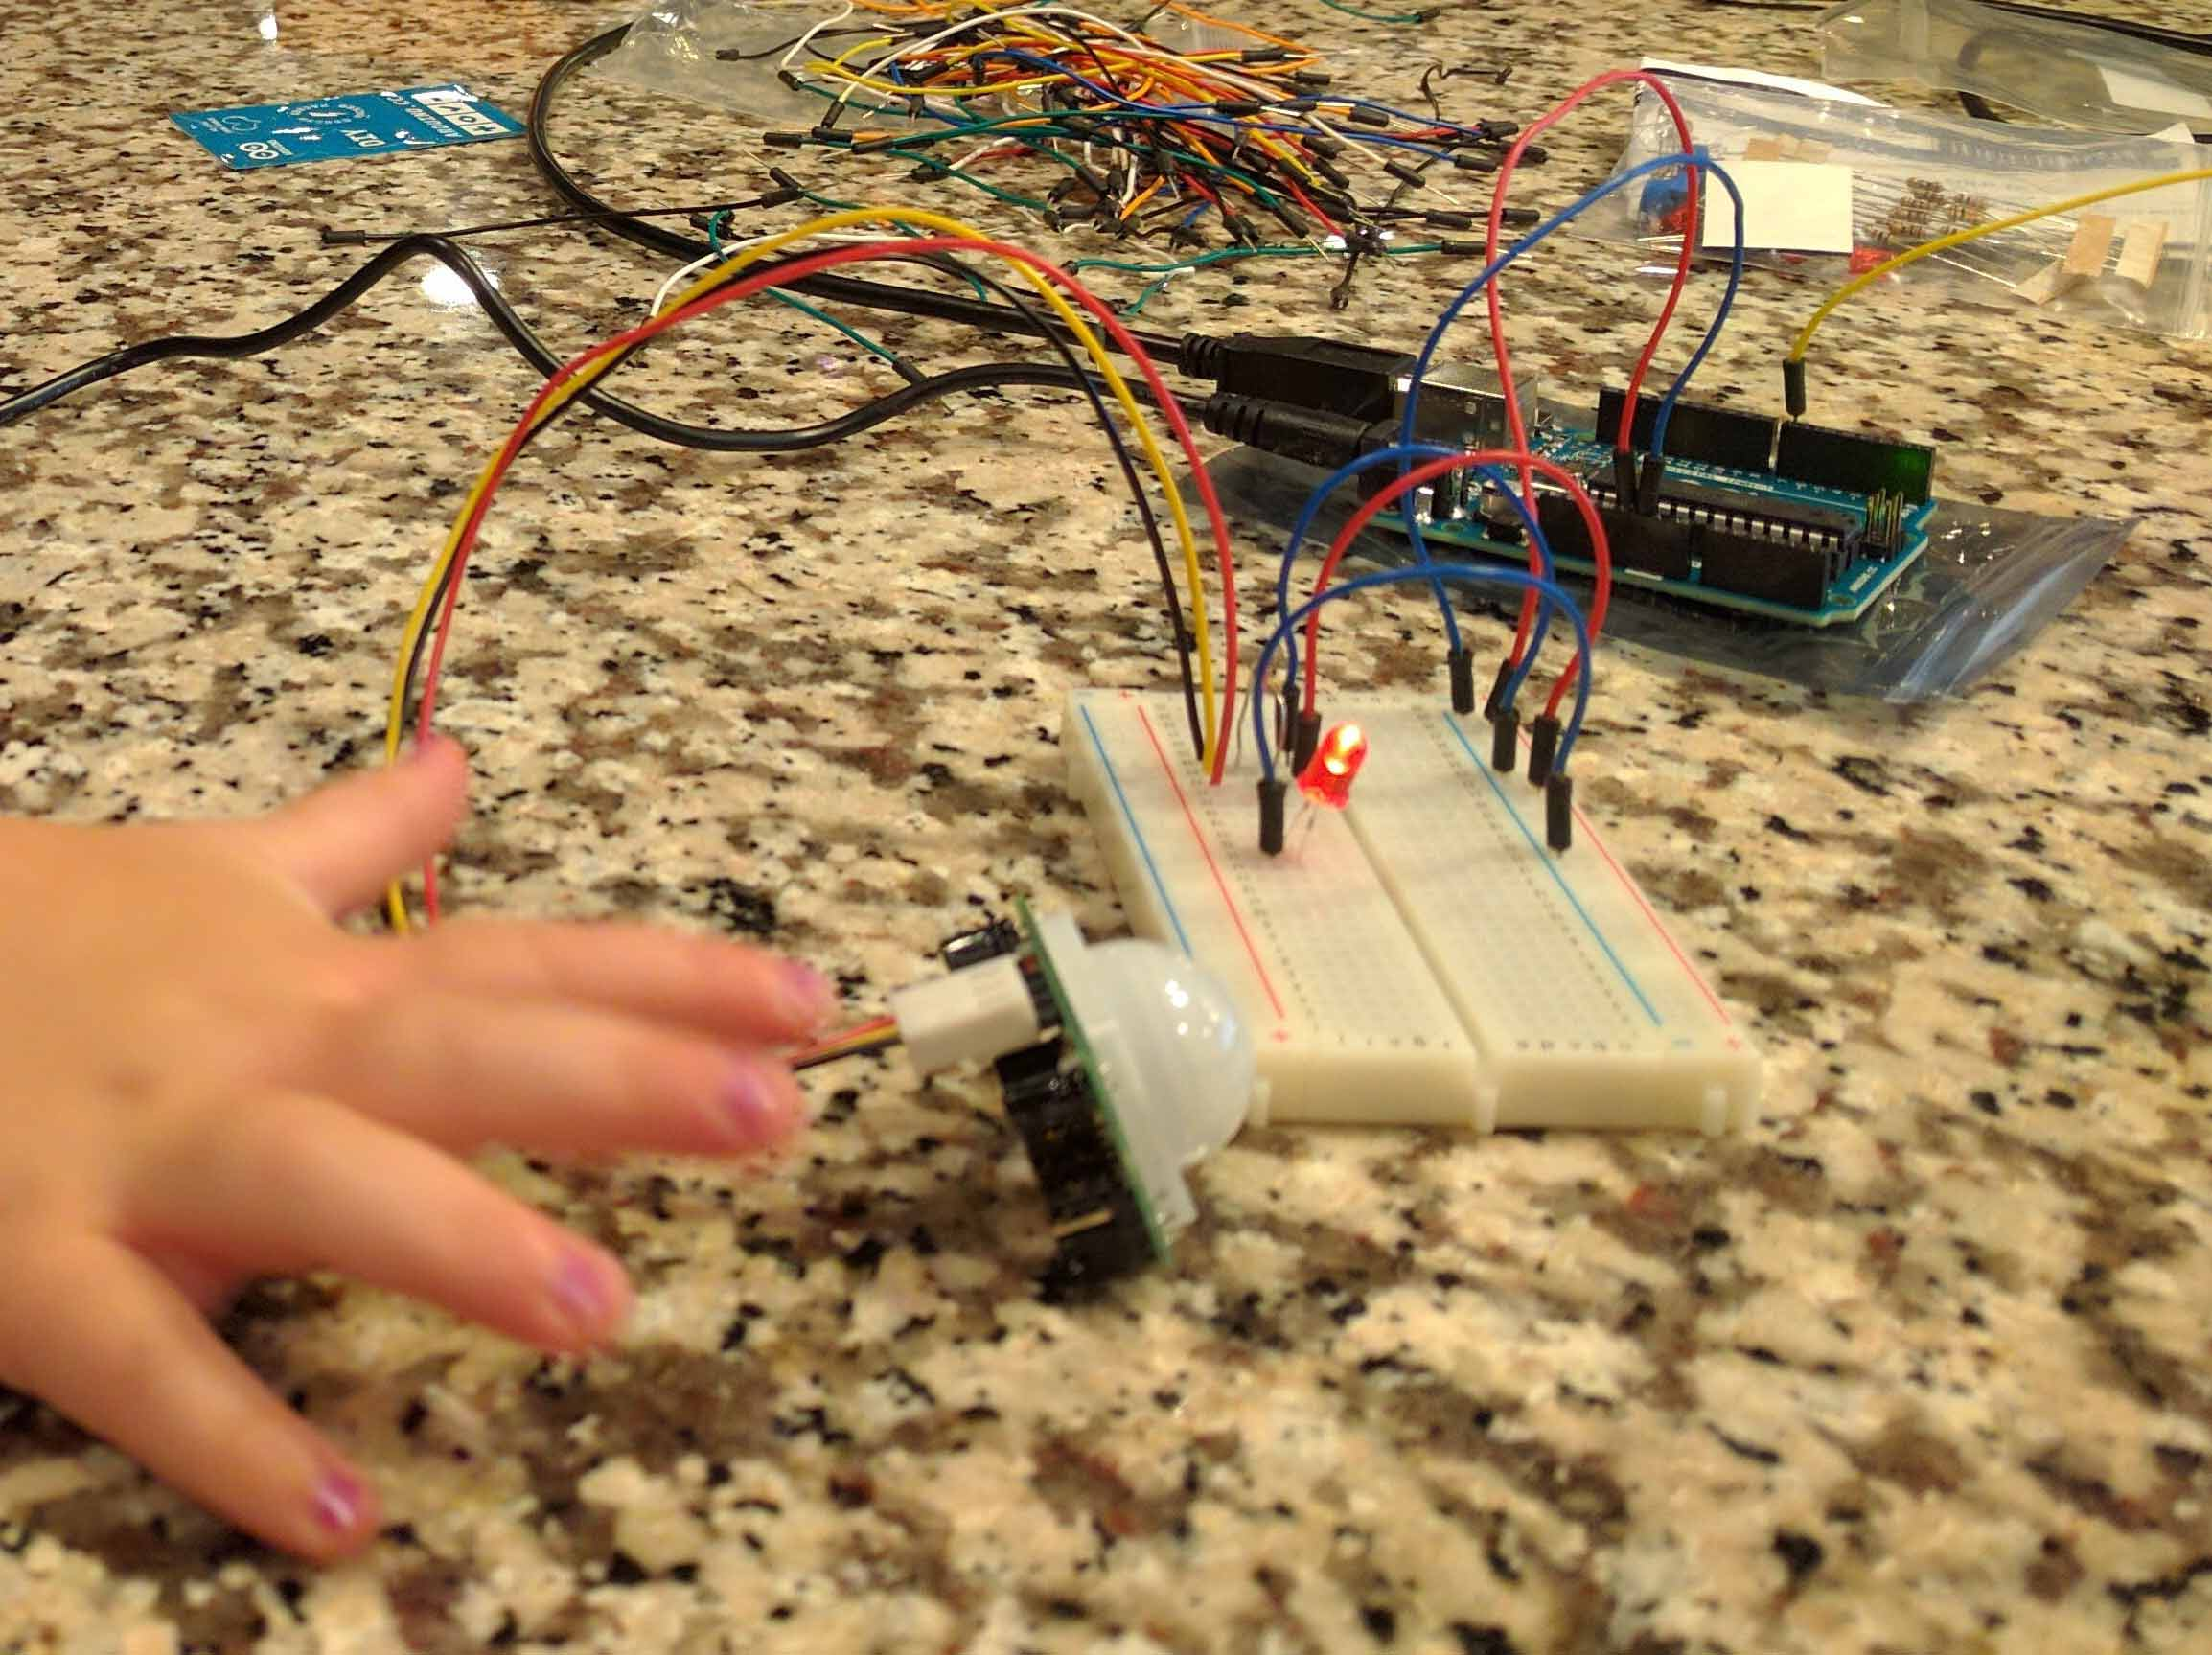 Small hand testing out motion sensor